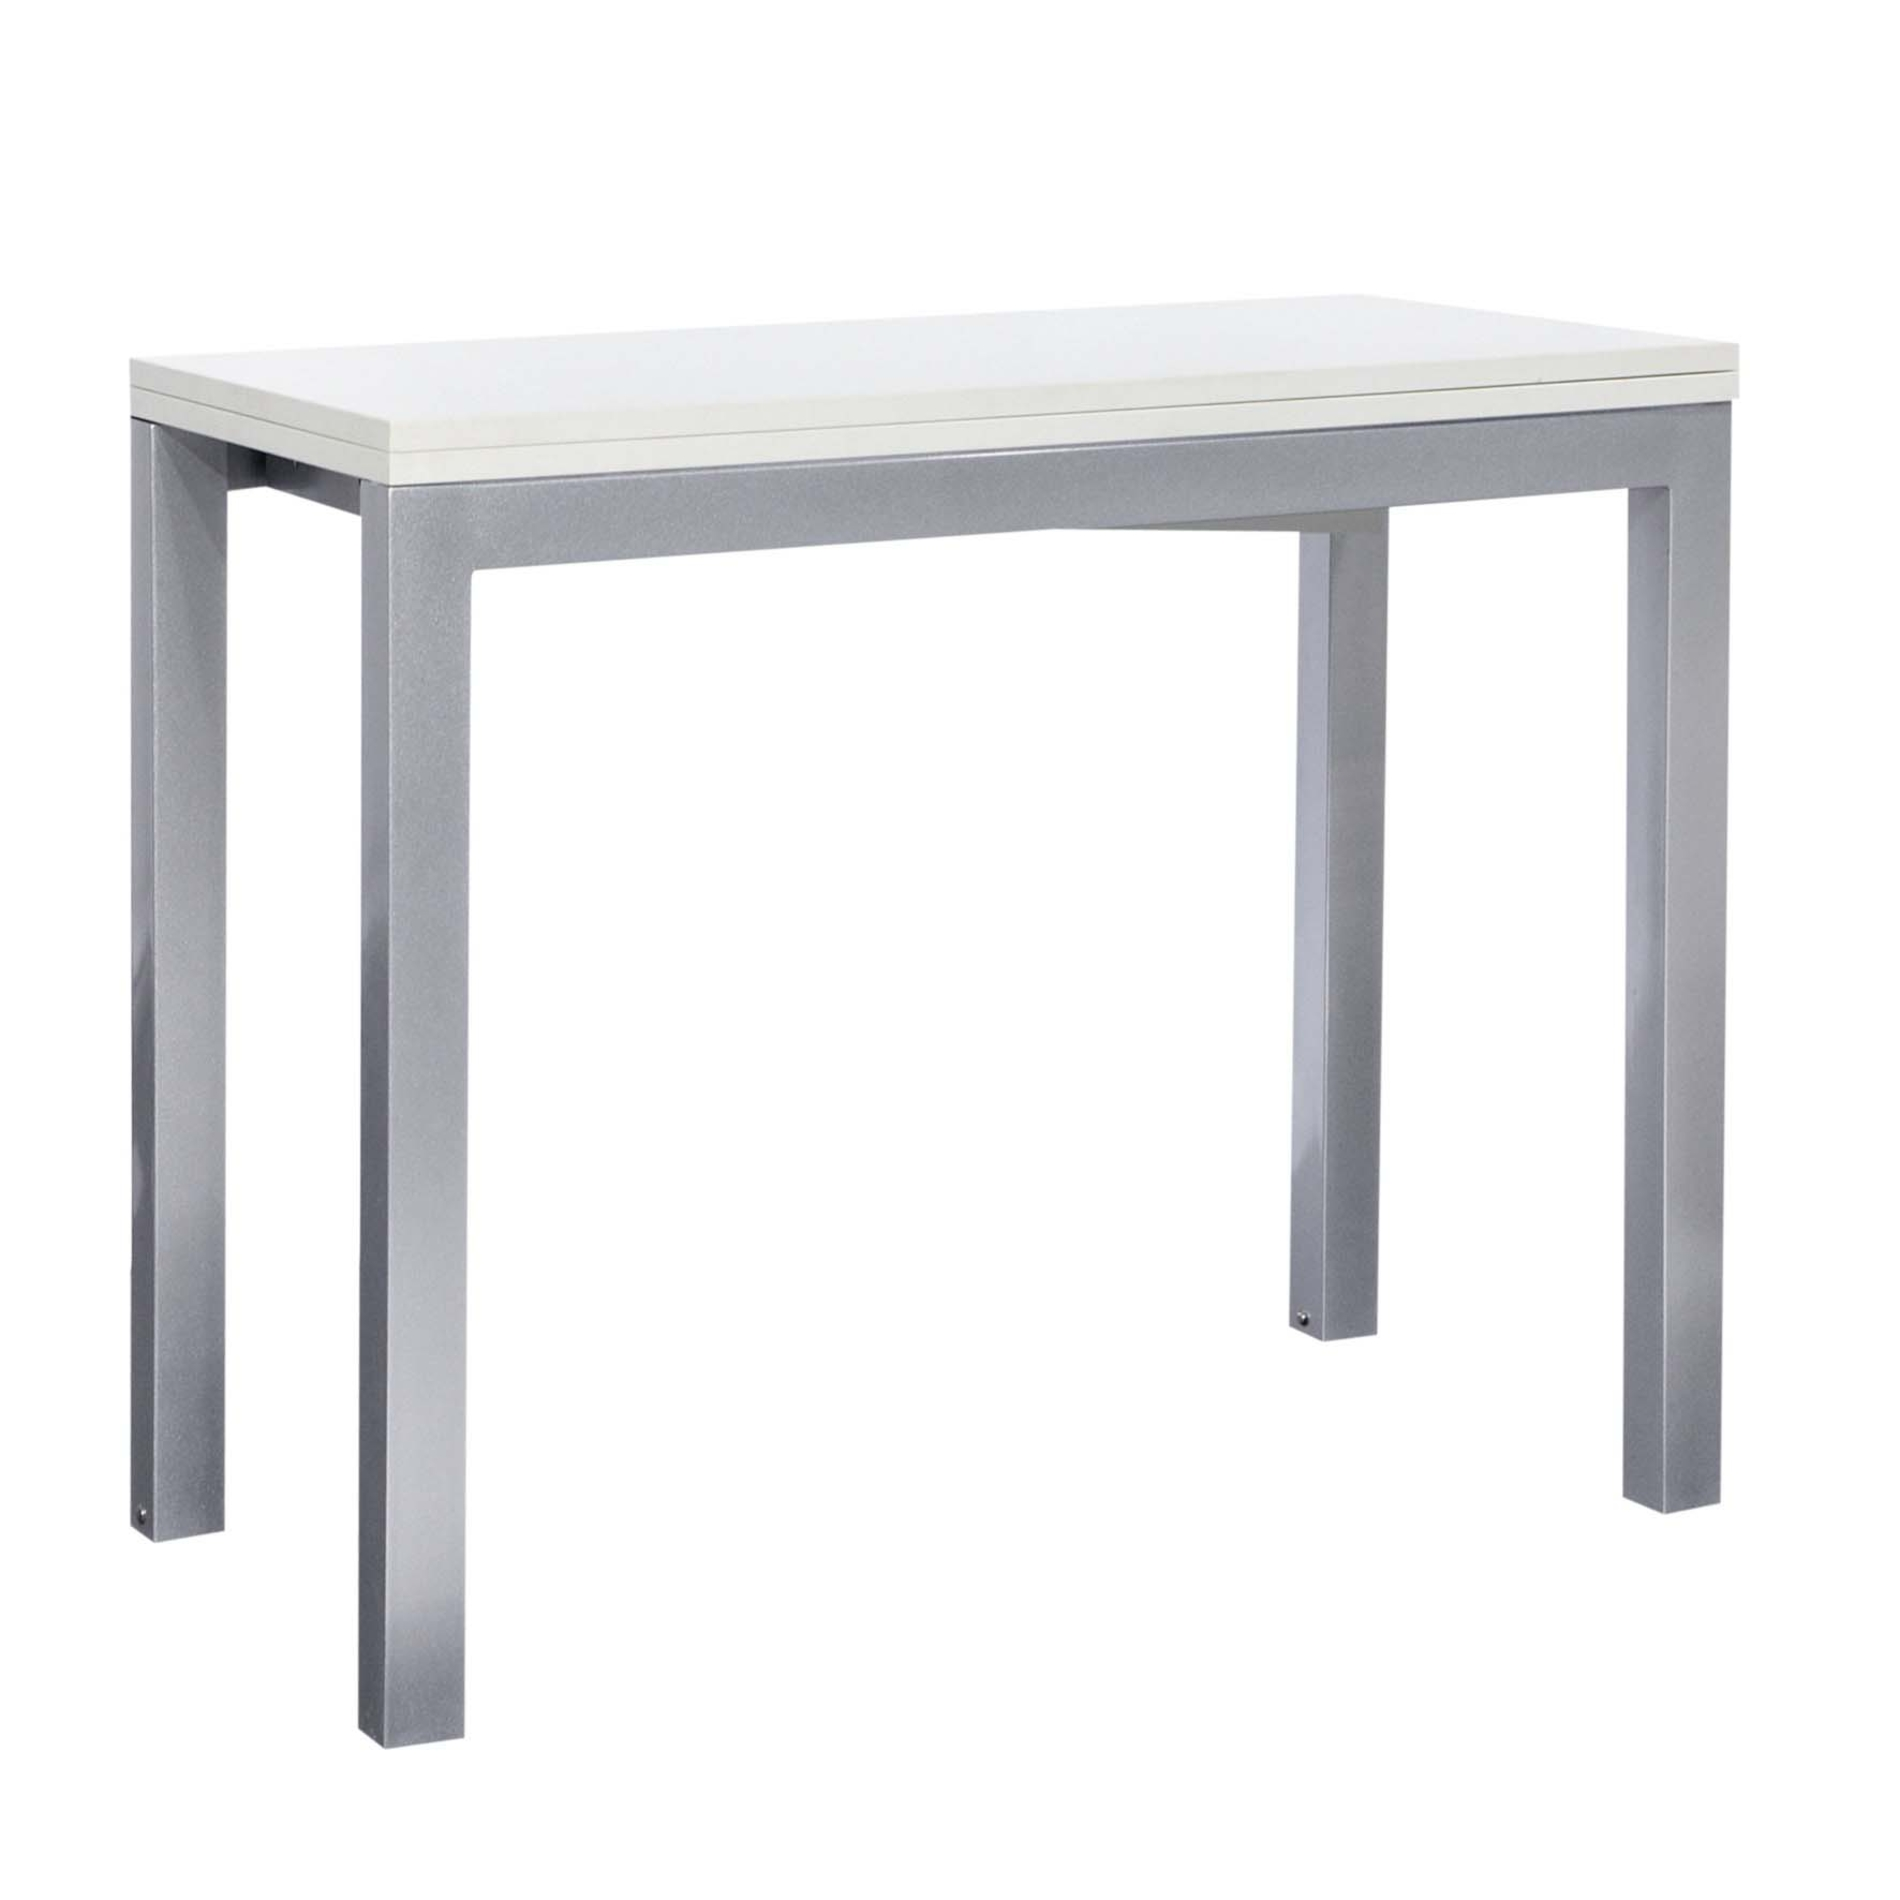 Move convertible console table - coincasa